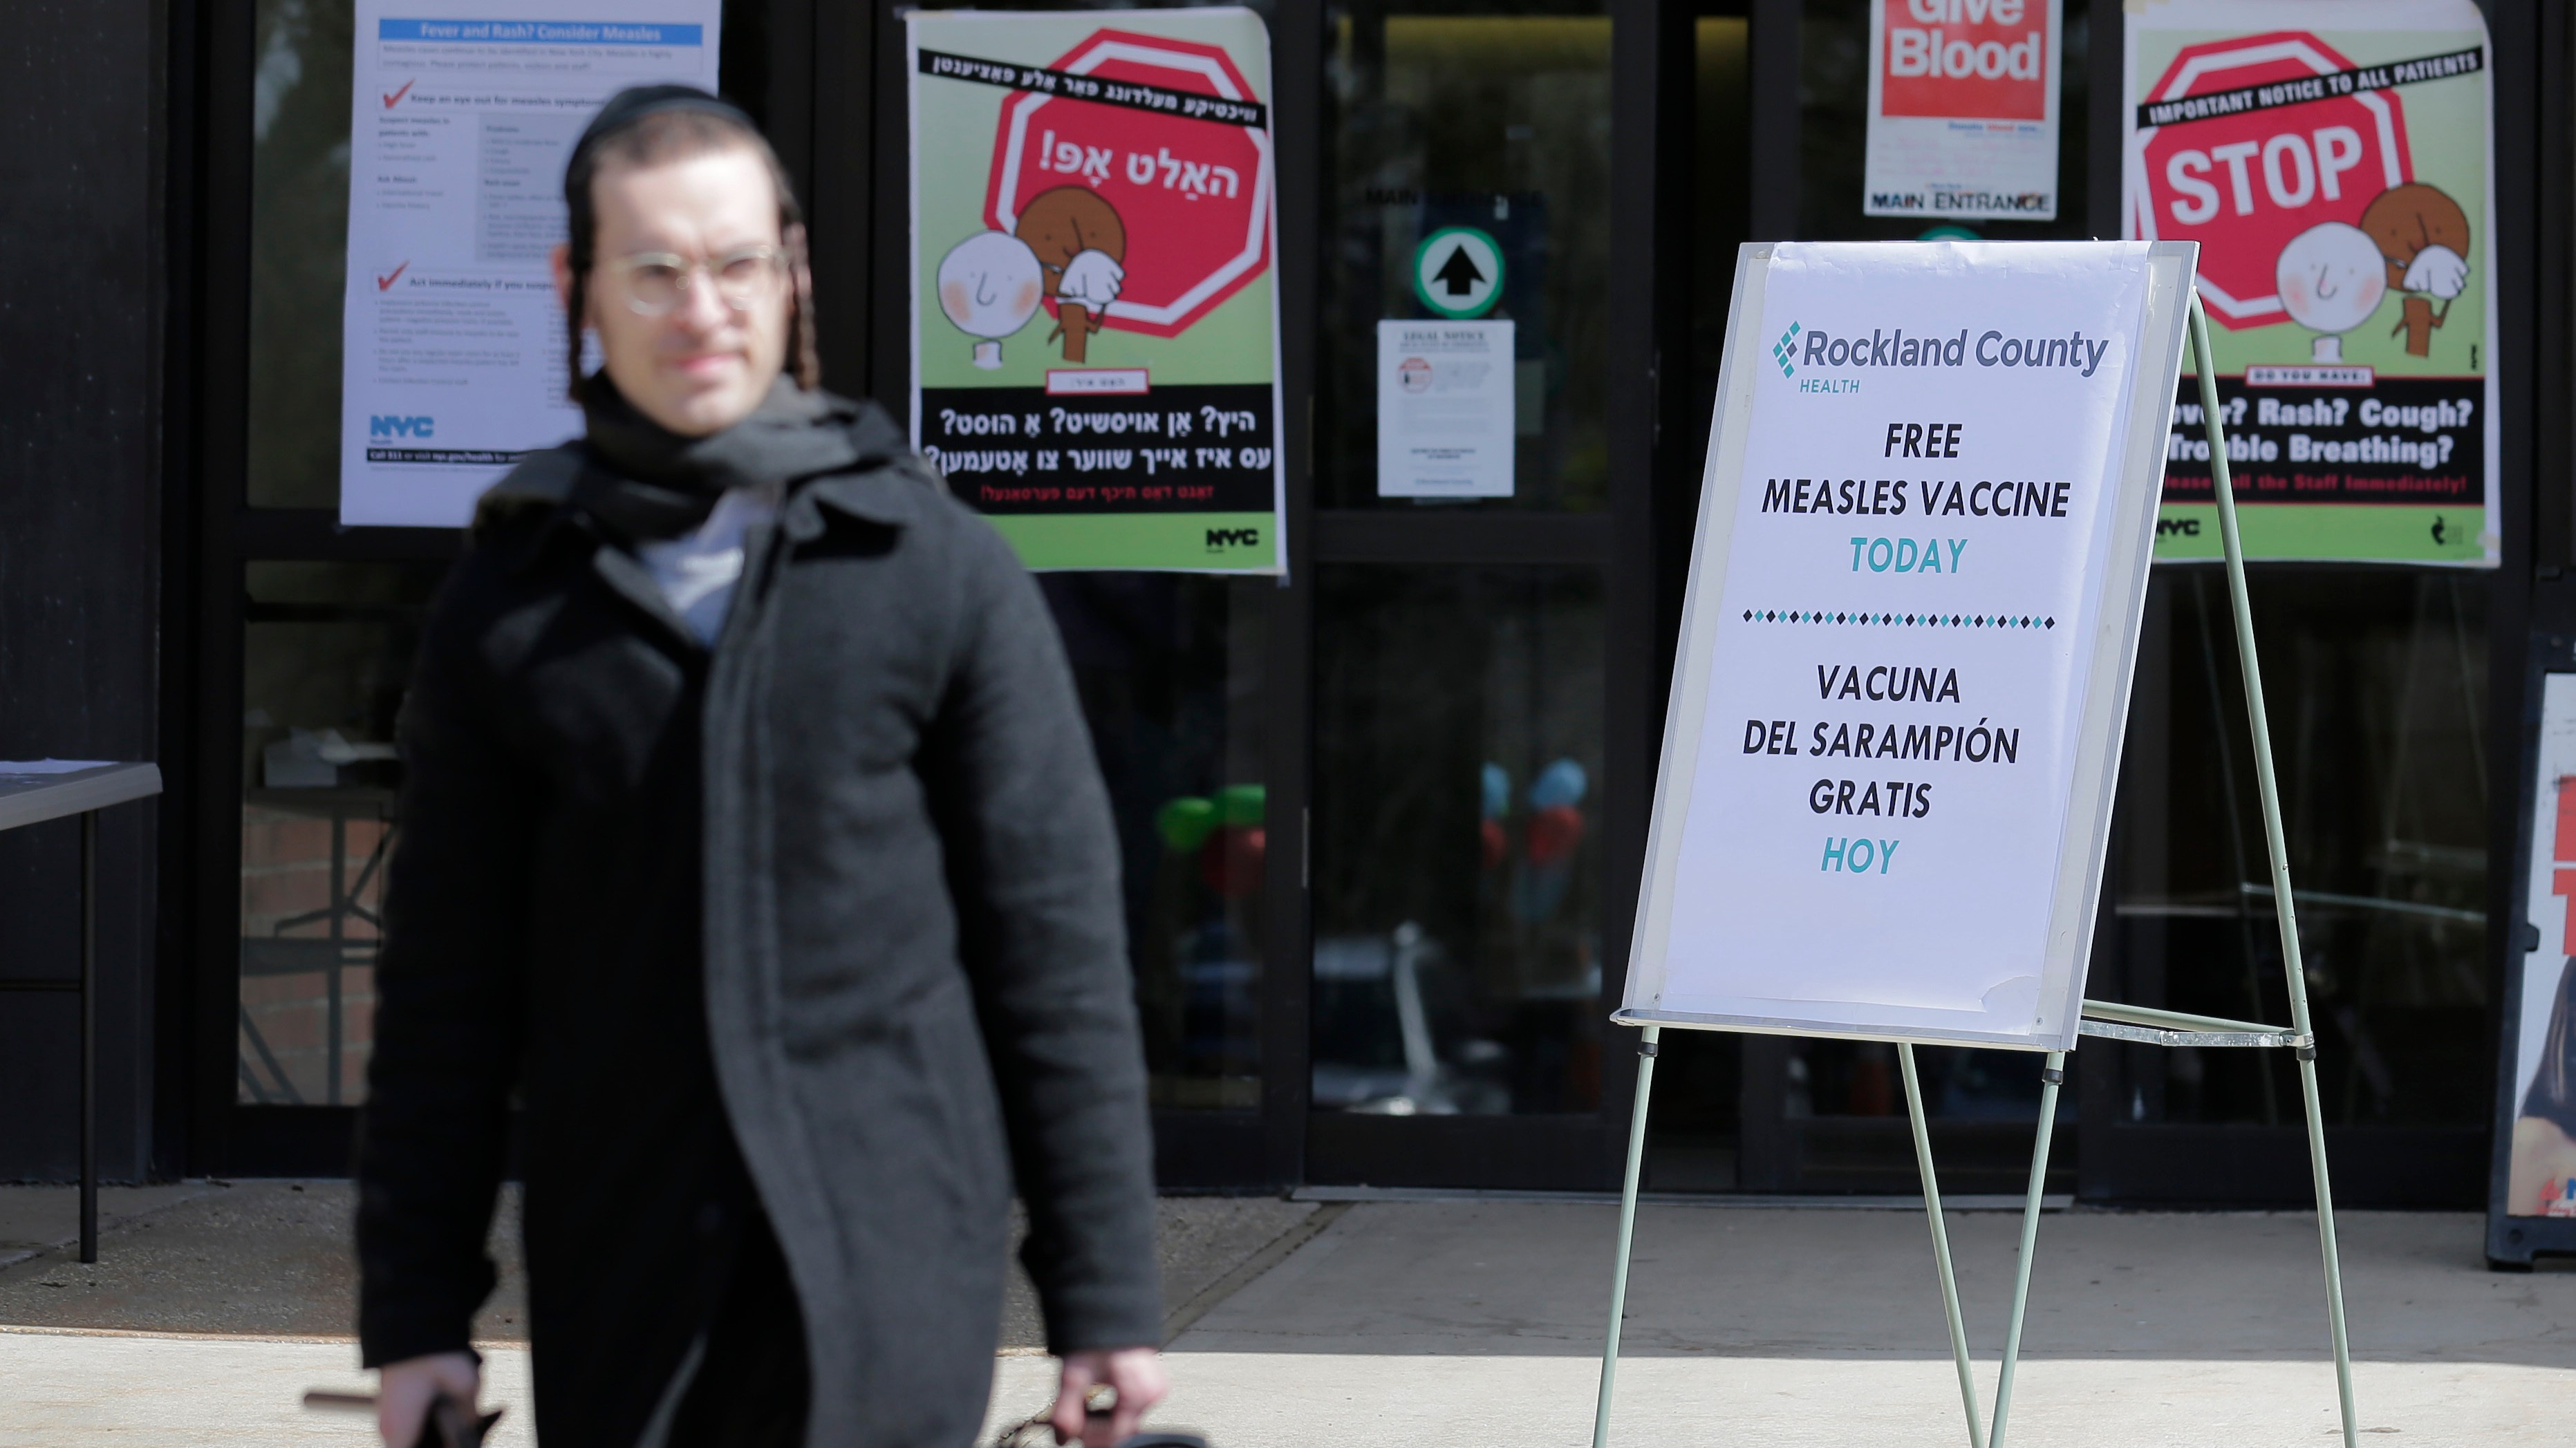 NY threatens to fine people with measles